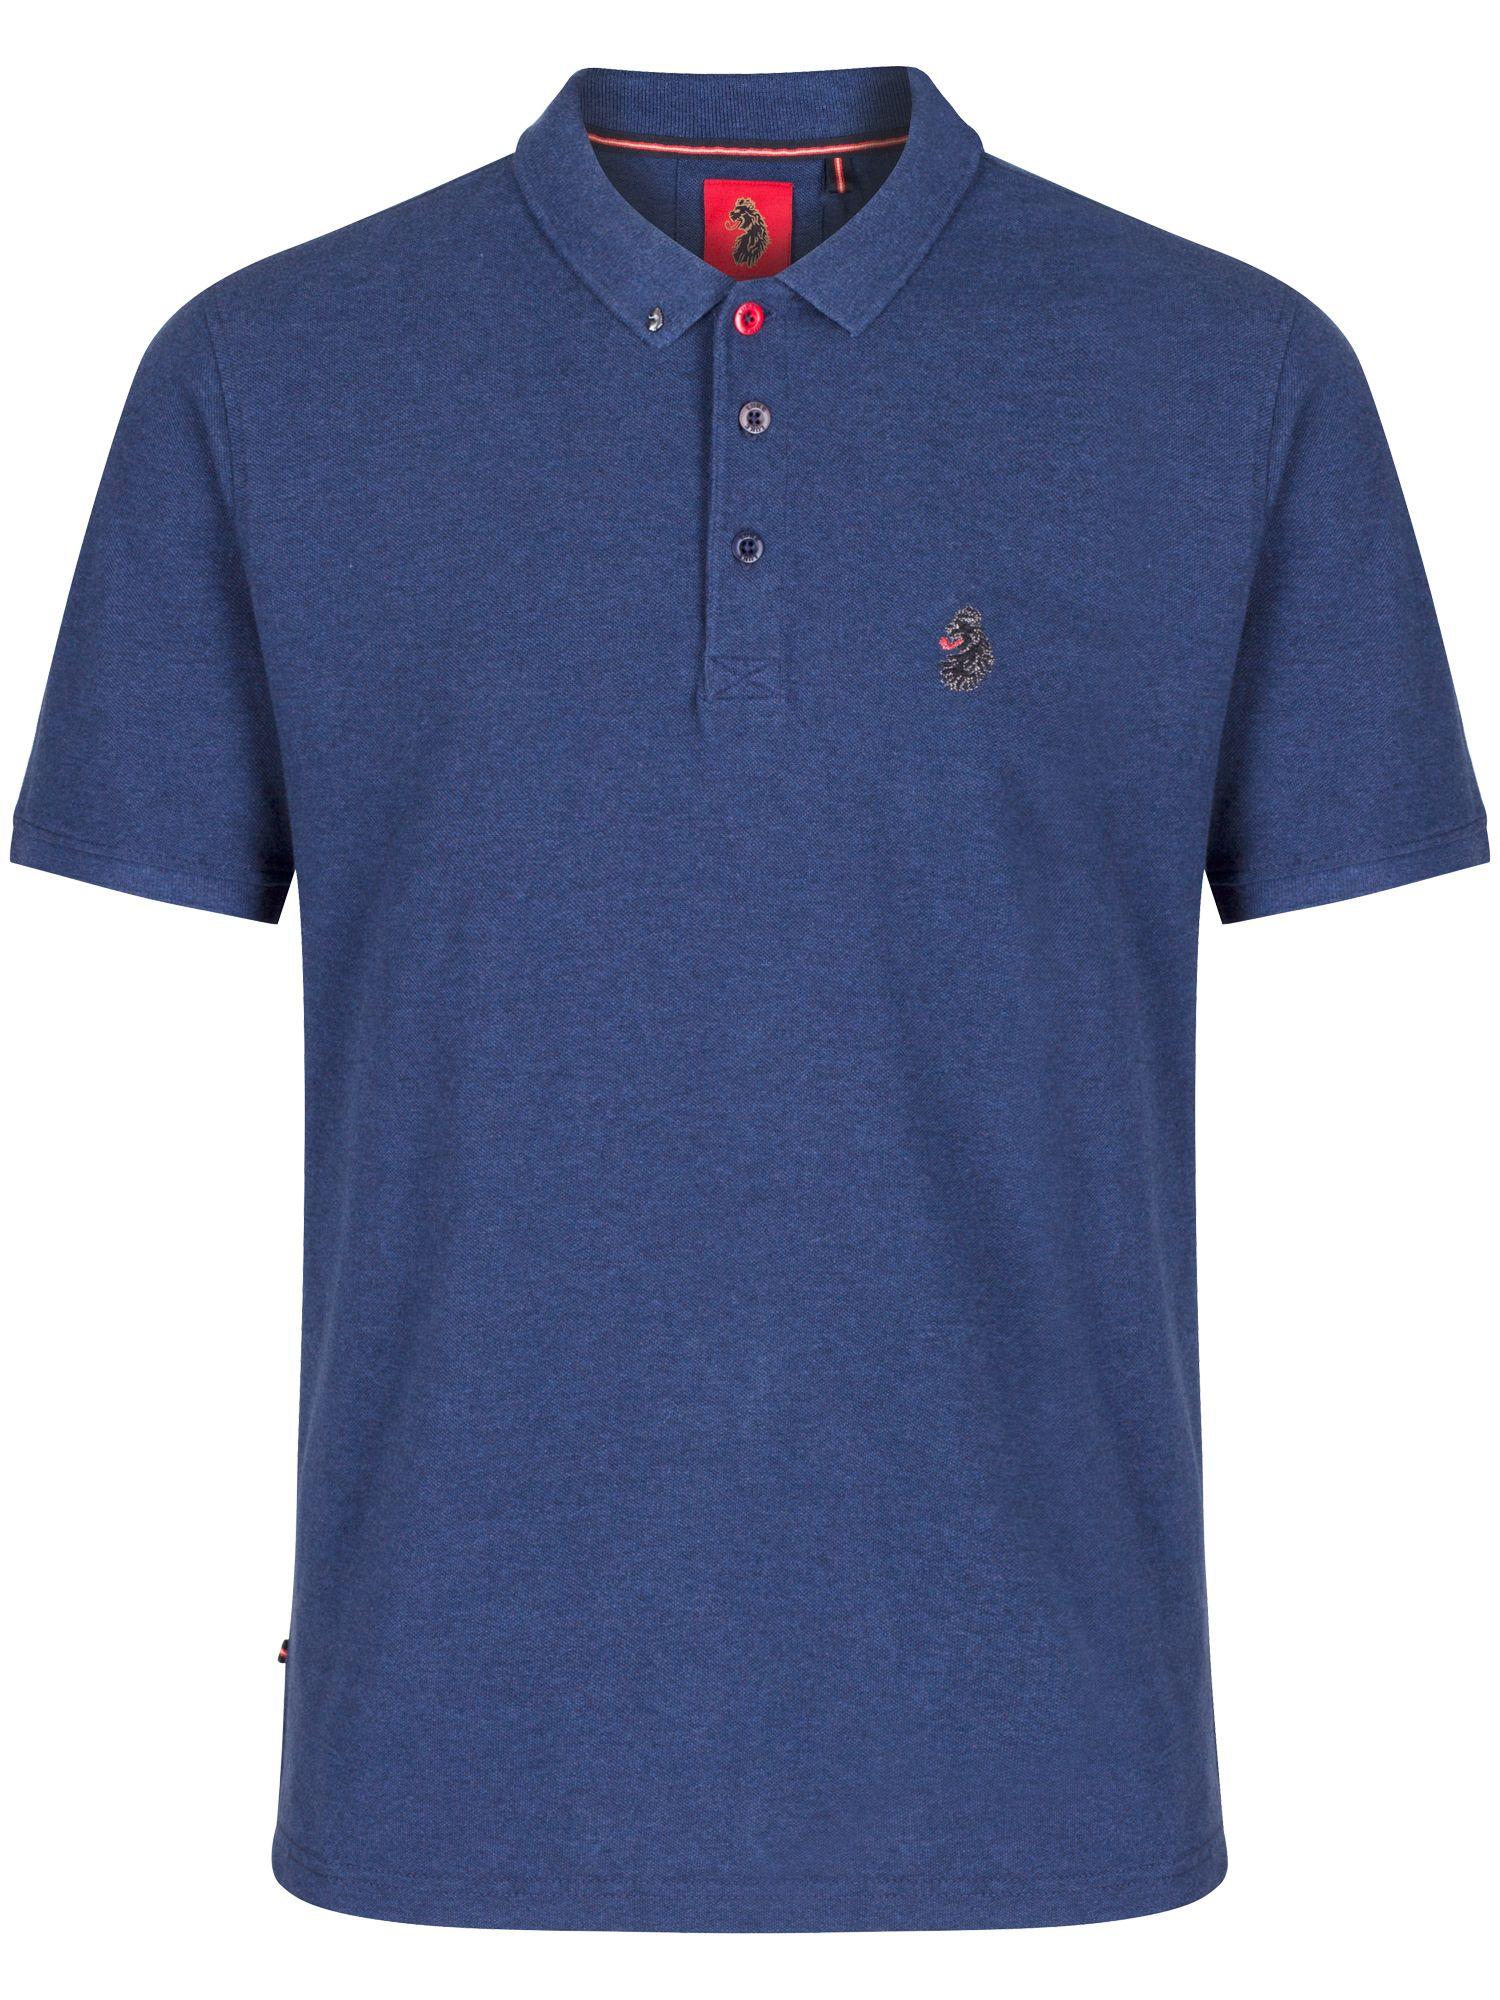 Men's Luke 1977 Williams Polo Shirt, Blue